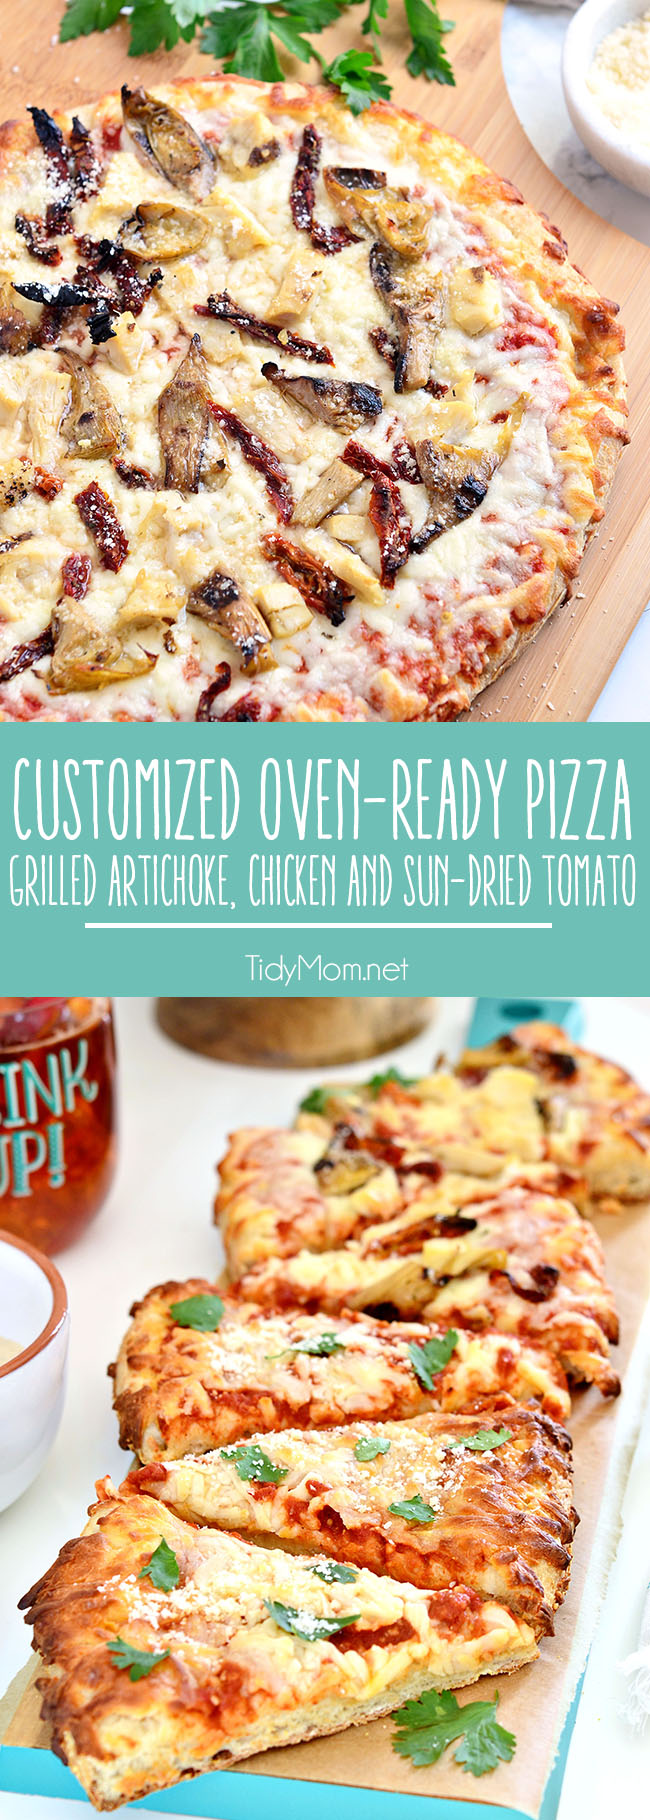 Customize an oven-ready cheese pizza with your own toppings. Grilled artichokes, chicken sun-dried tomato pizza topped with parmesan cheese was a big hit at our Girls Night Pizza Party! Details at TidyMom.net